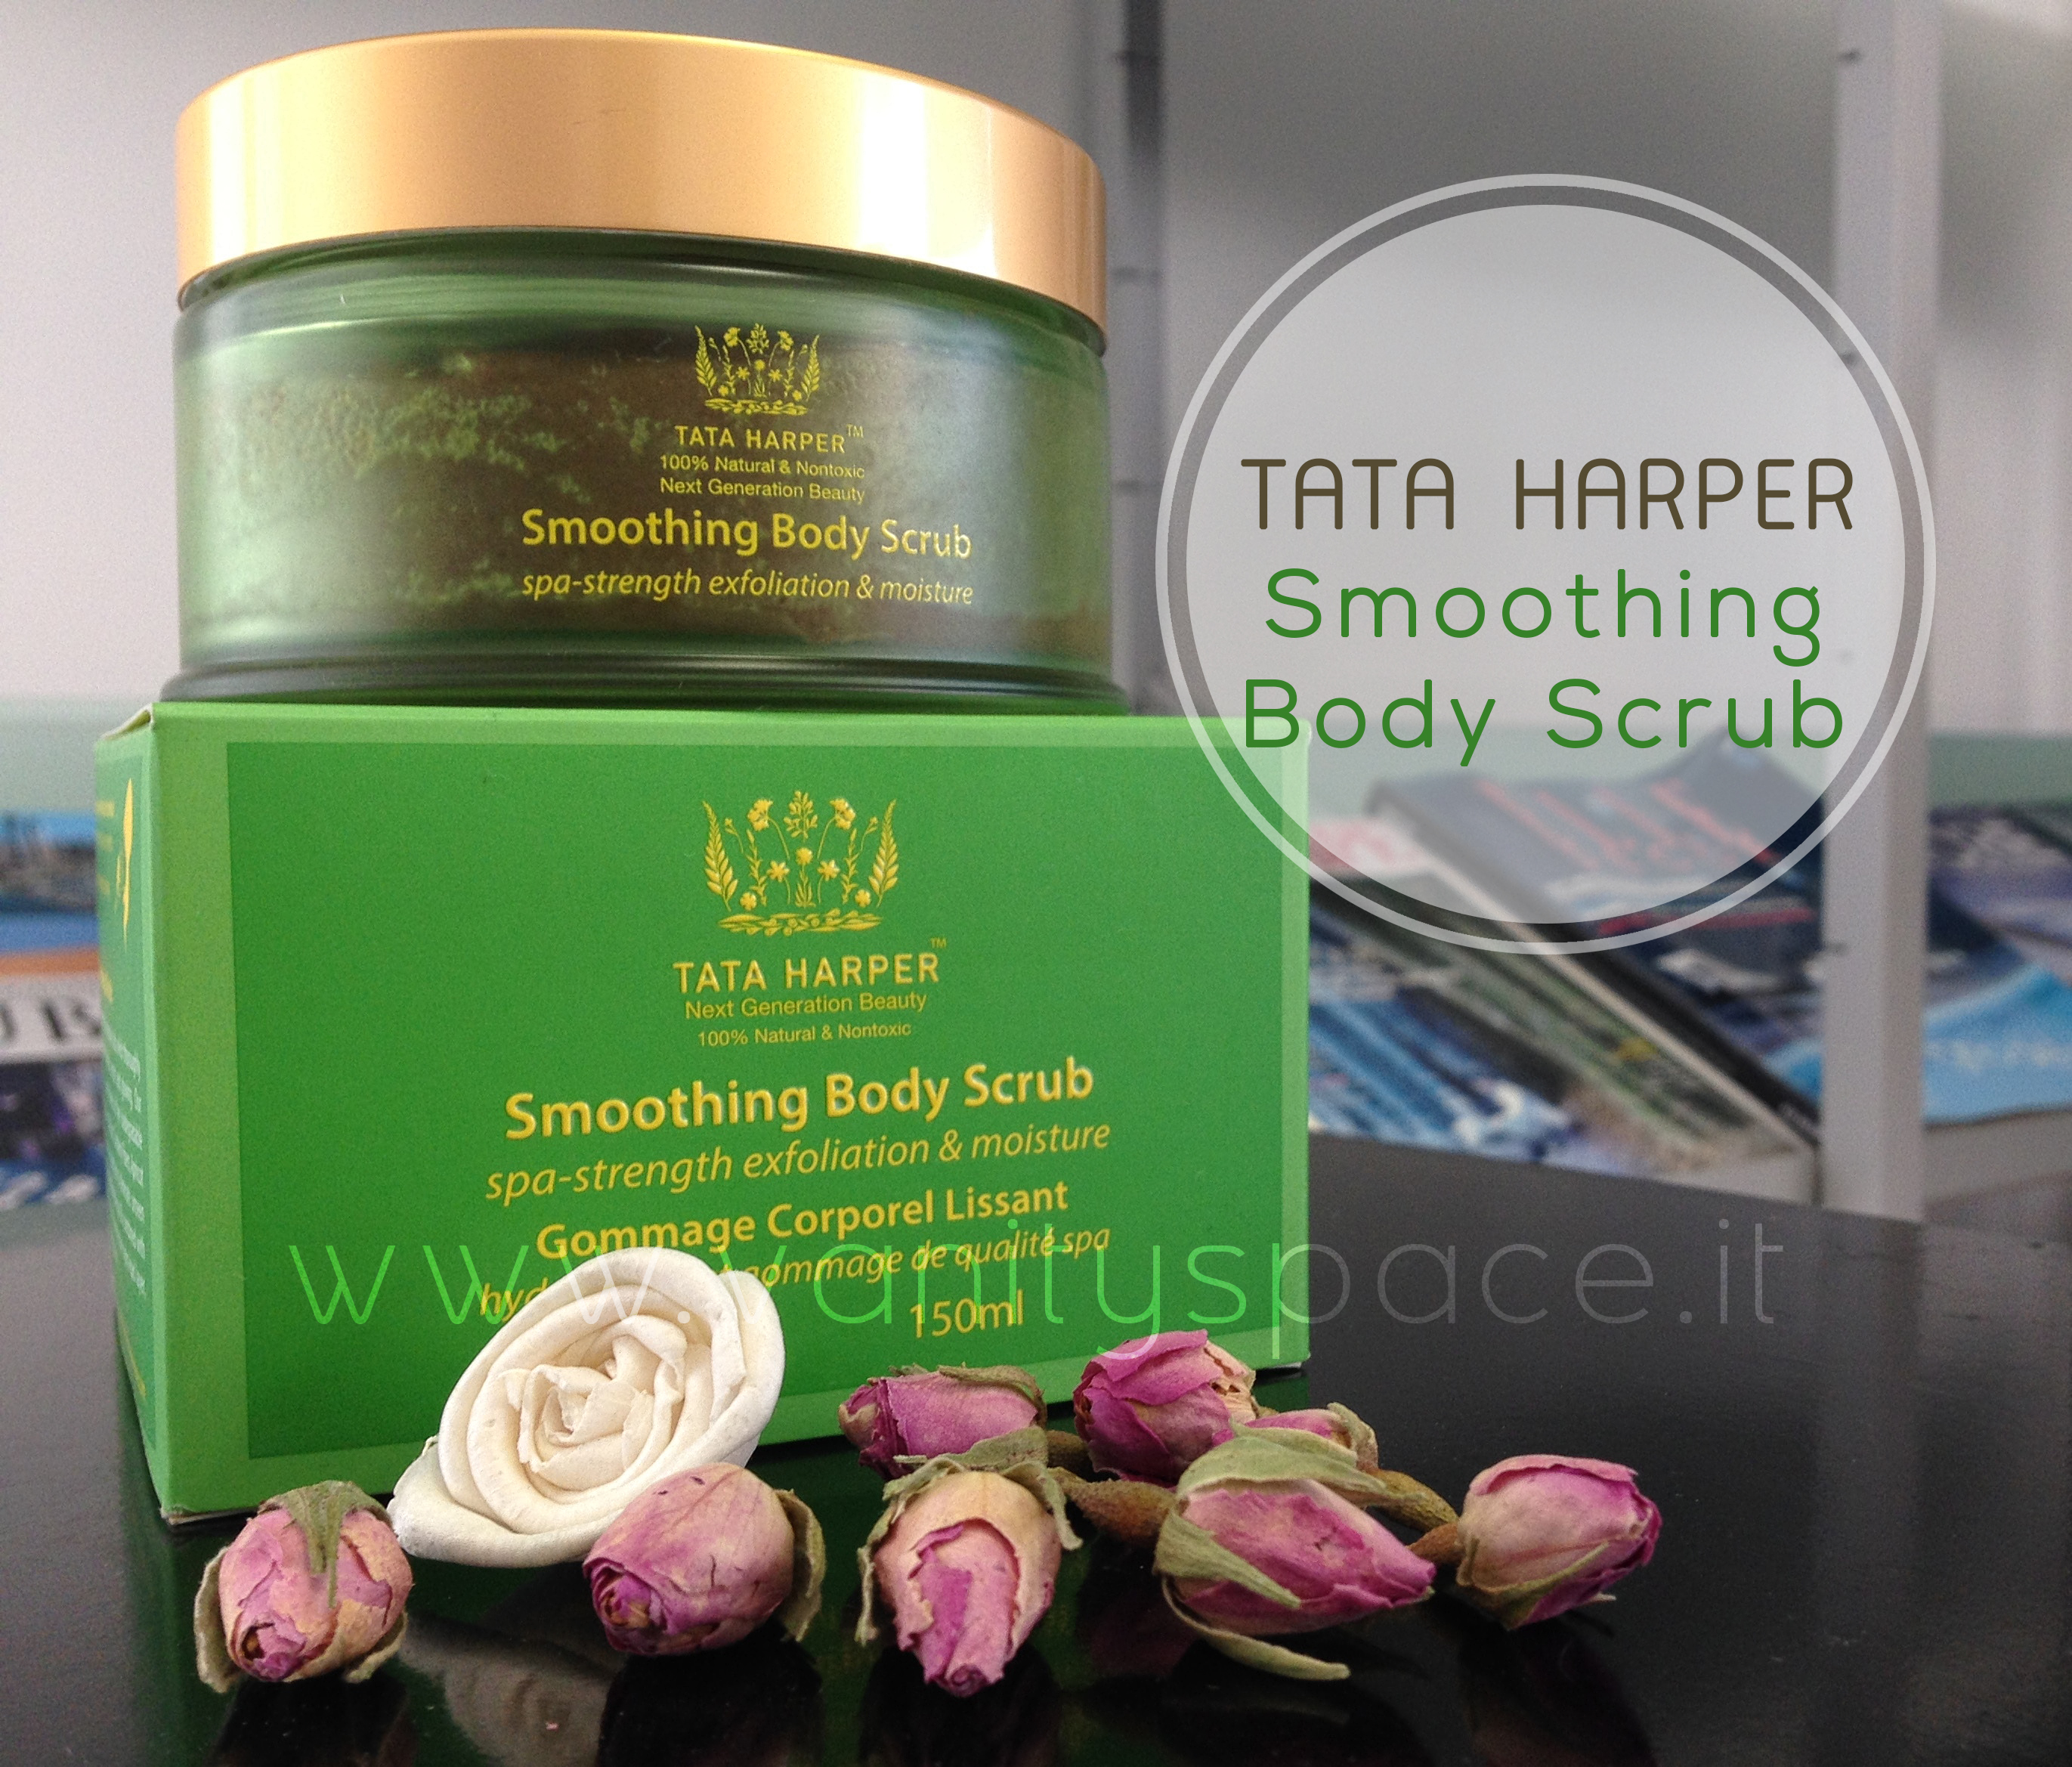 Tata Harper – Smoothing Body Scrub